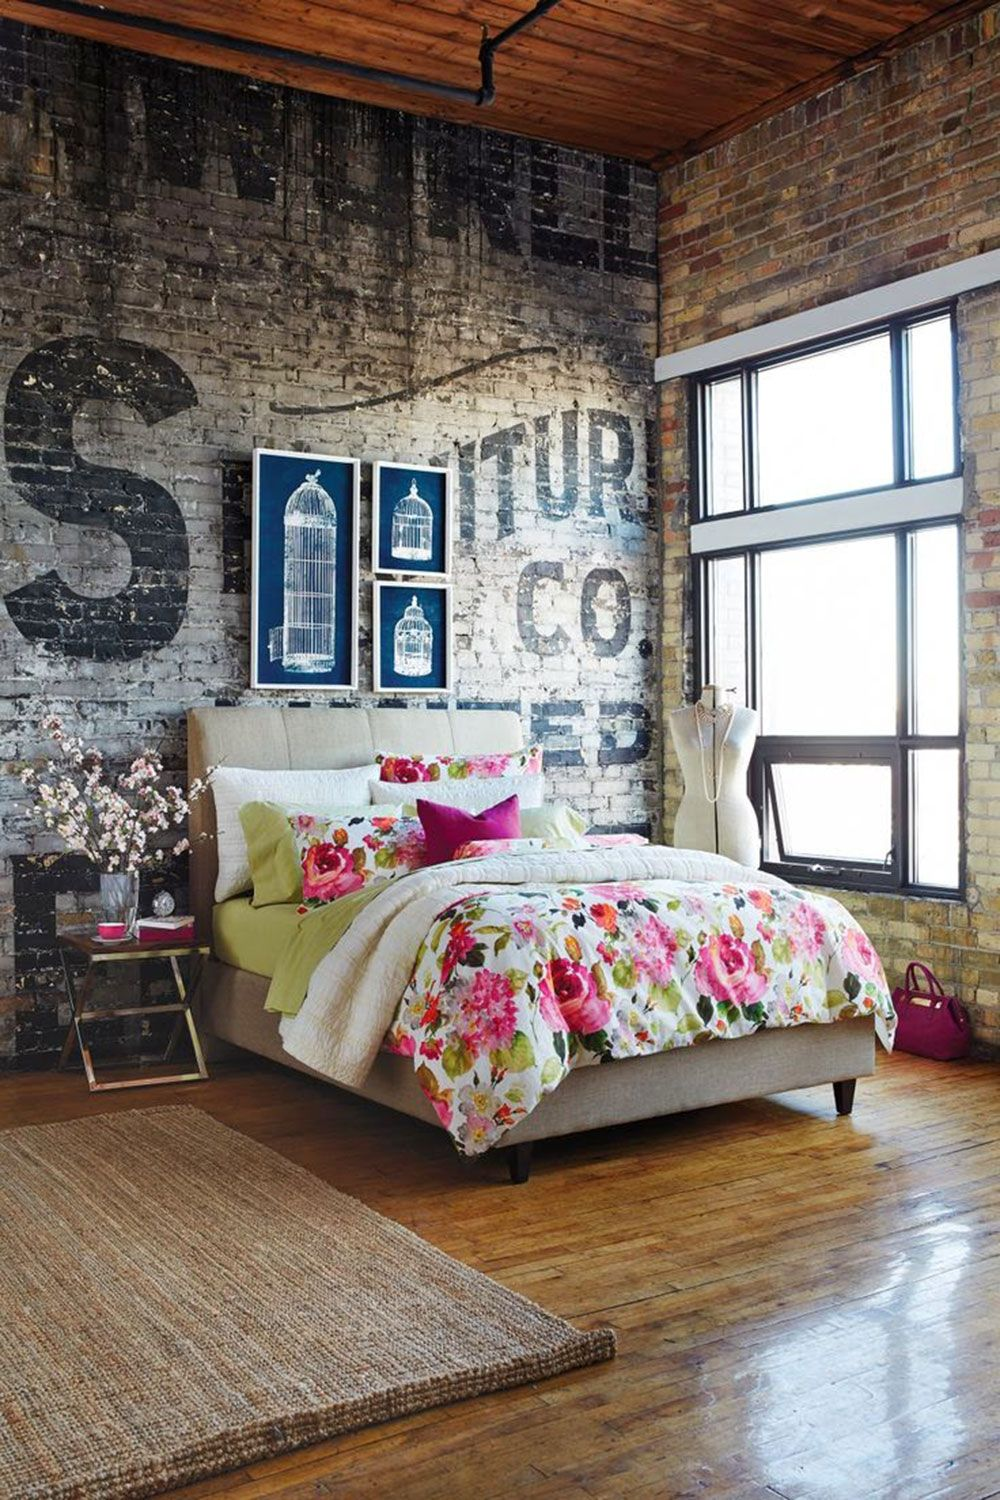 Elegant Rustic Bedroom With Brick Wall